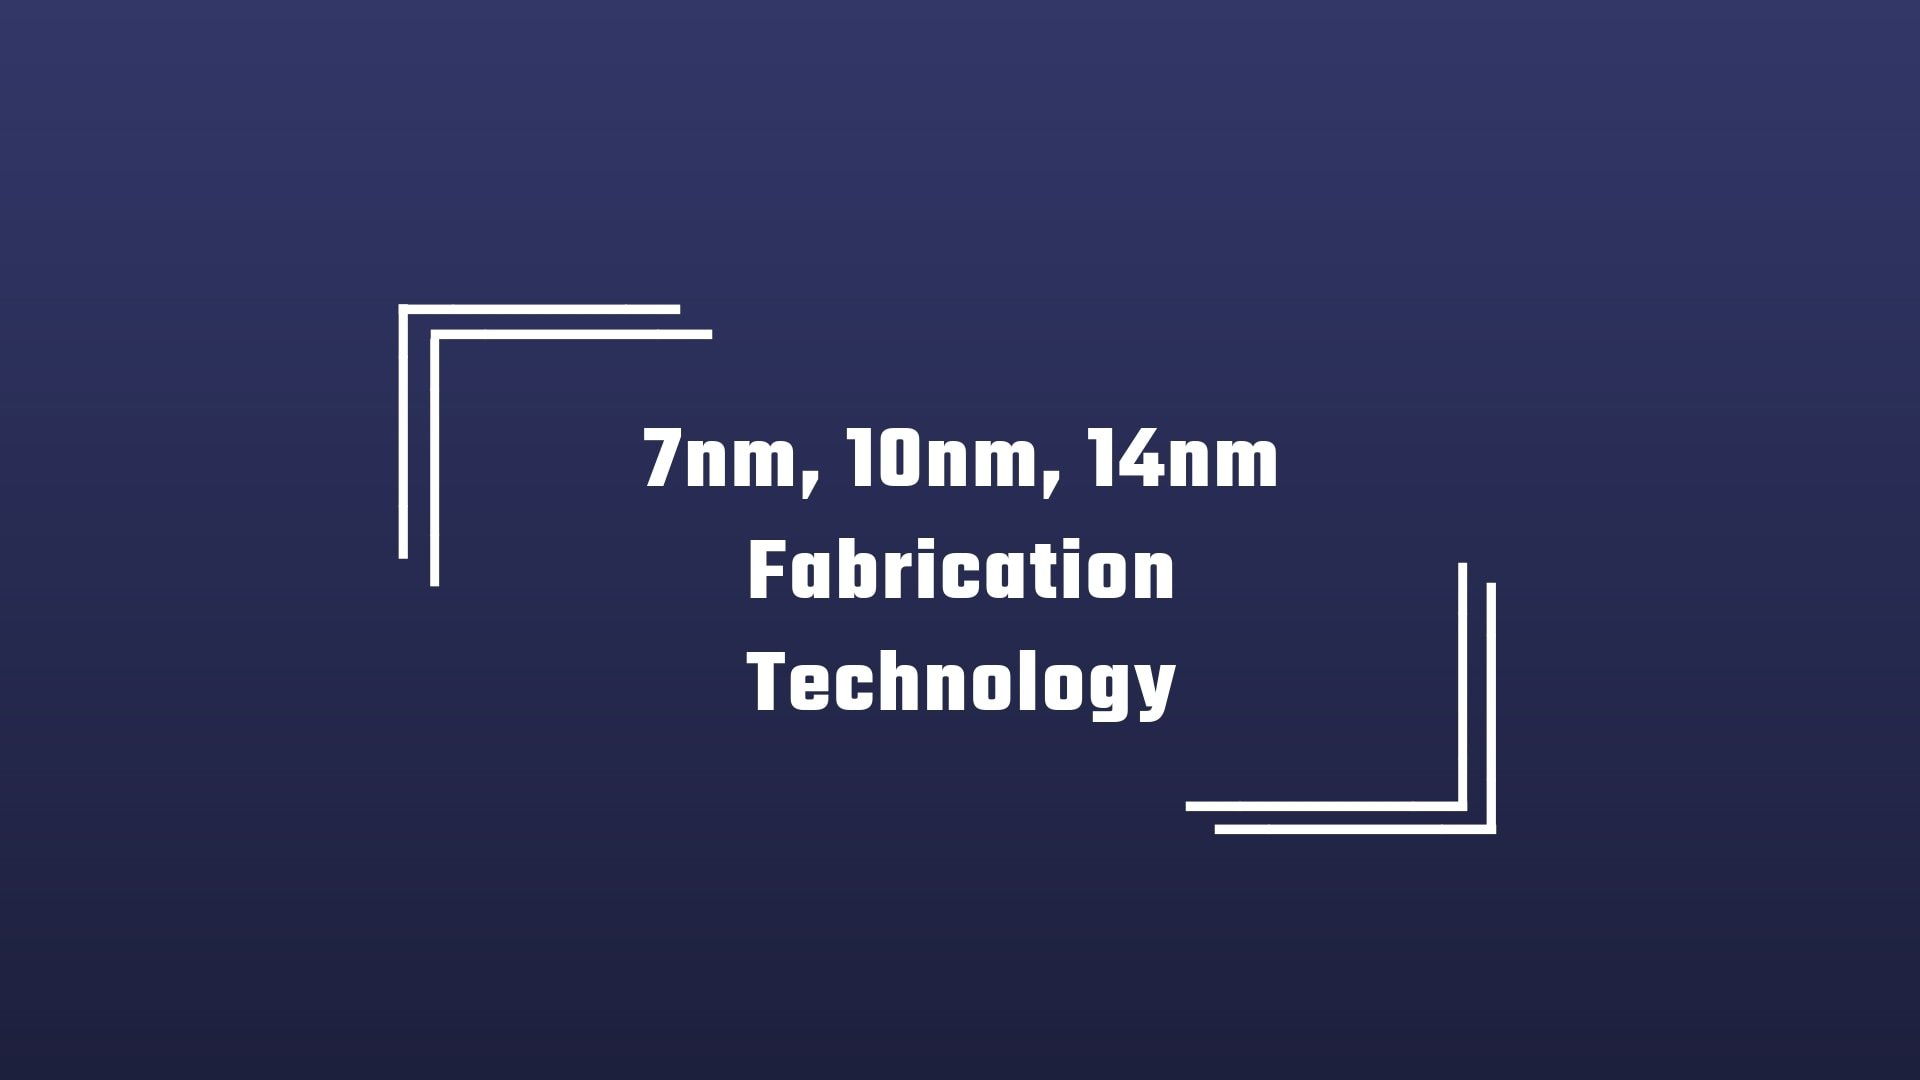 7nm 10nm 14nm Fabrication Process